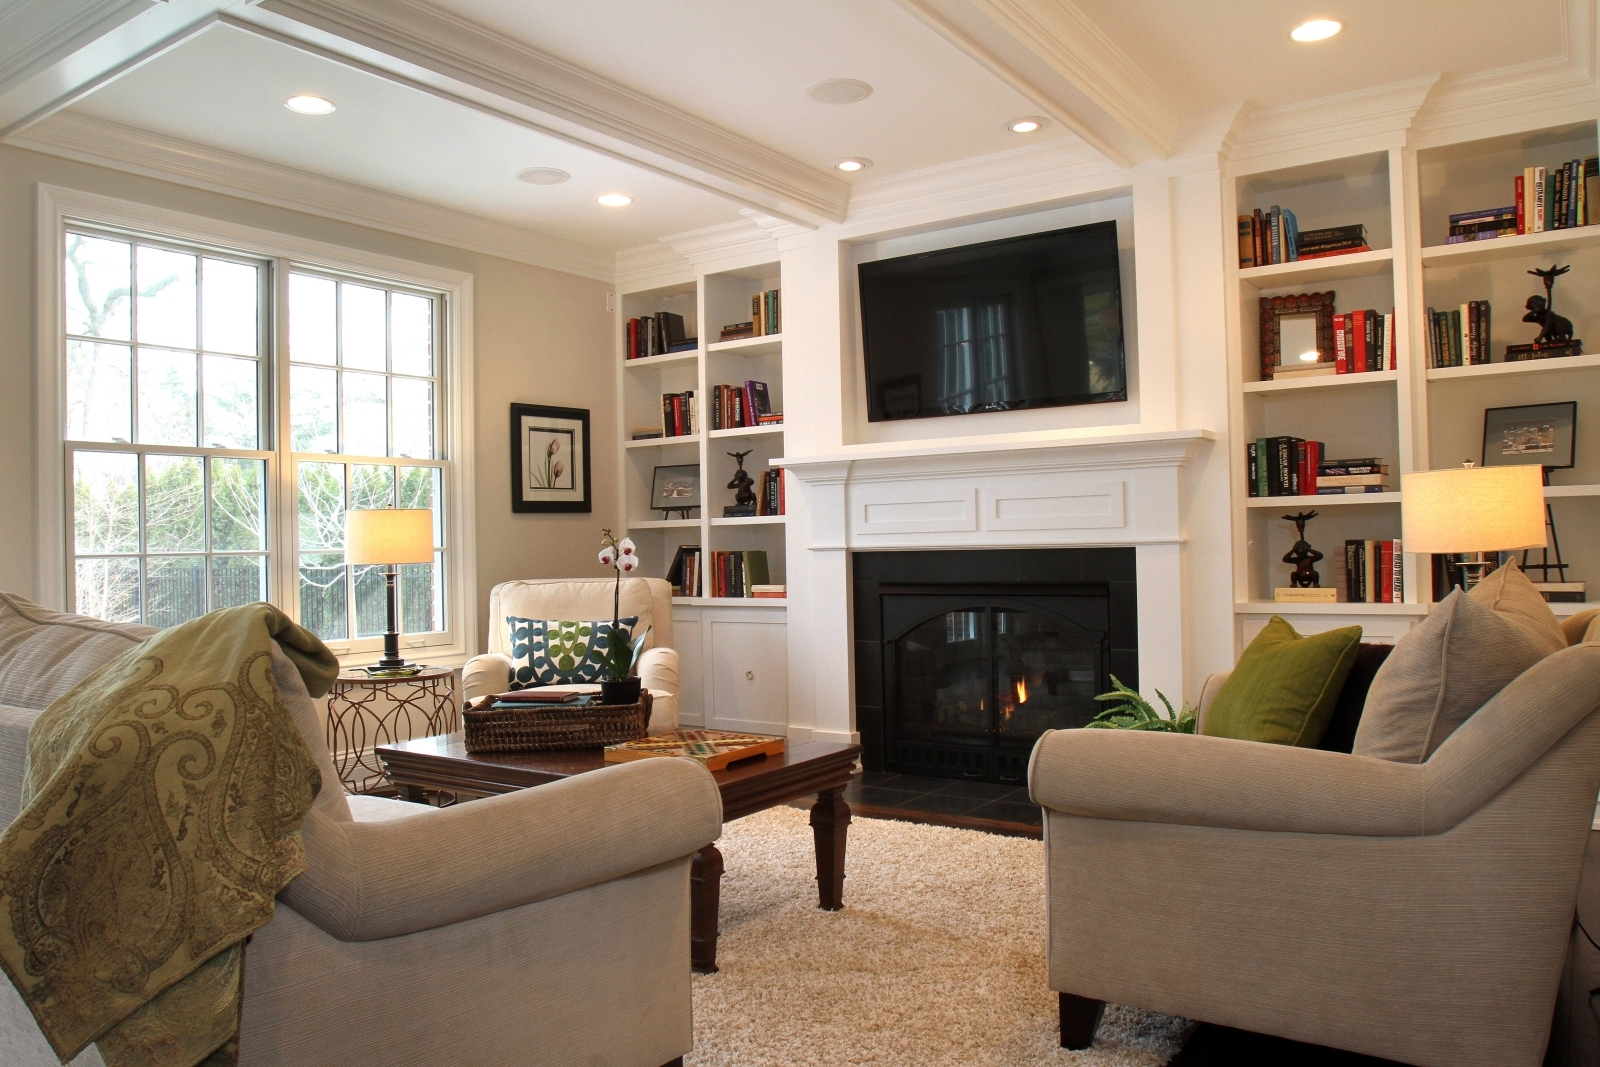 family-room-ideas-with-fireplace-and-tv-family-room-ideas-with-fireplace-and-tv-beautiful-fireplace-